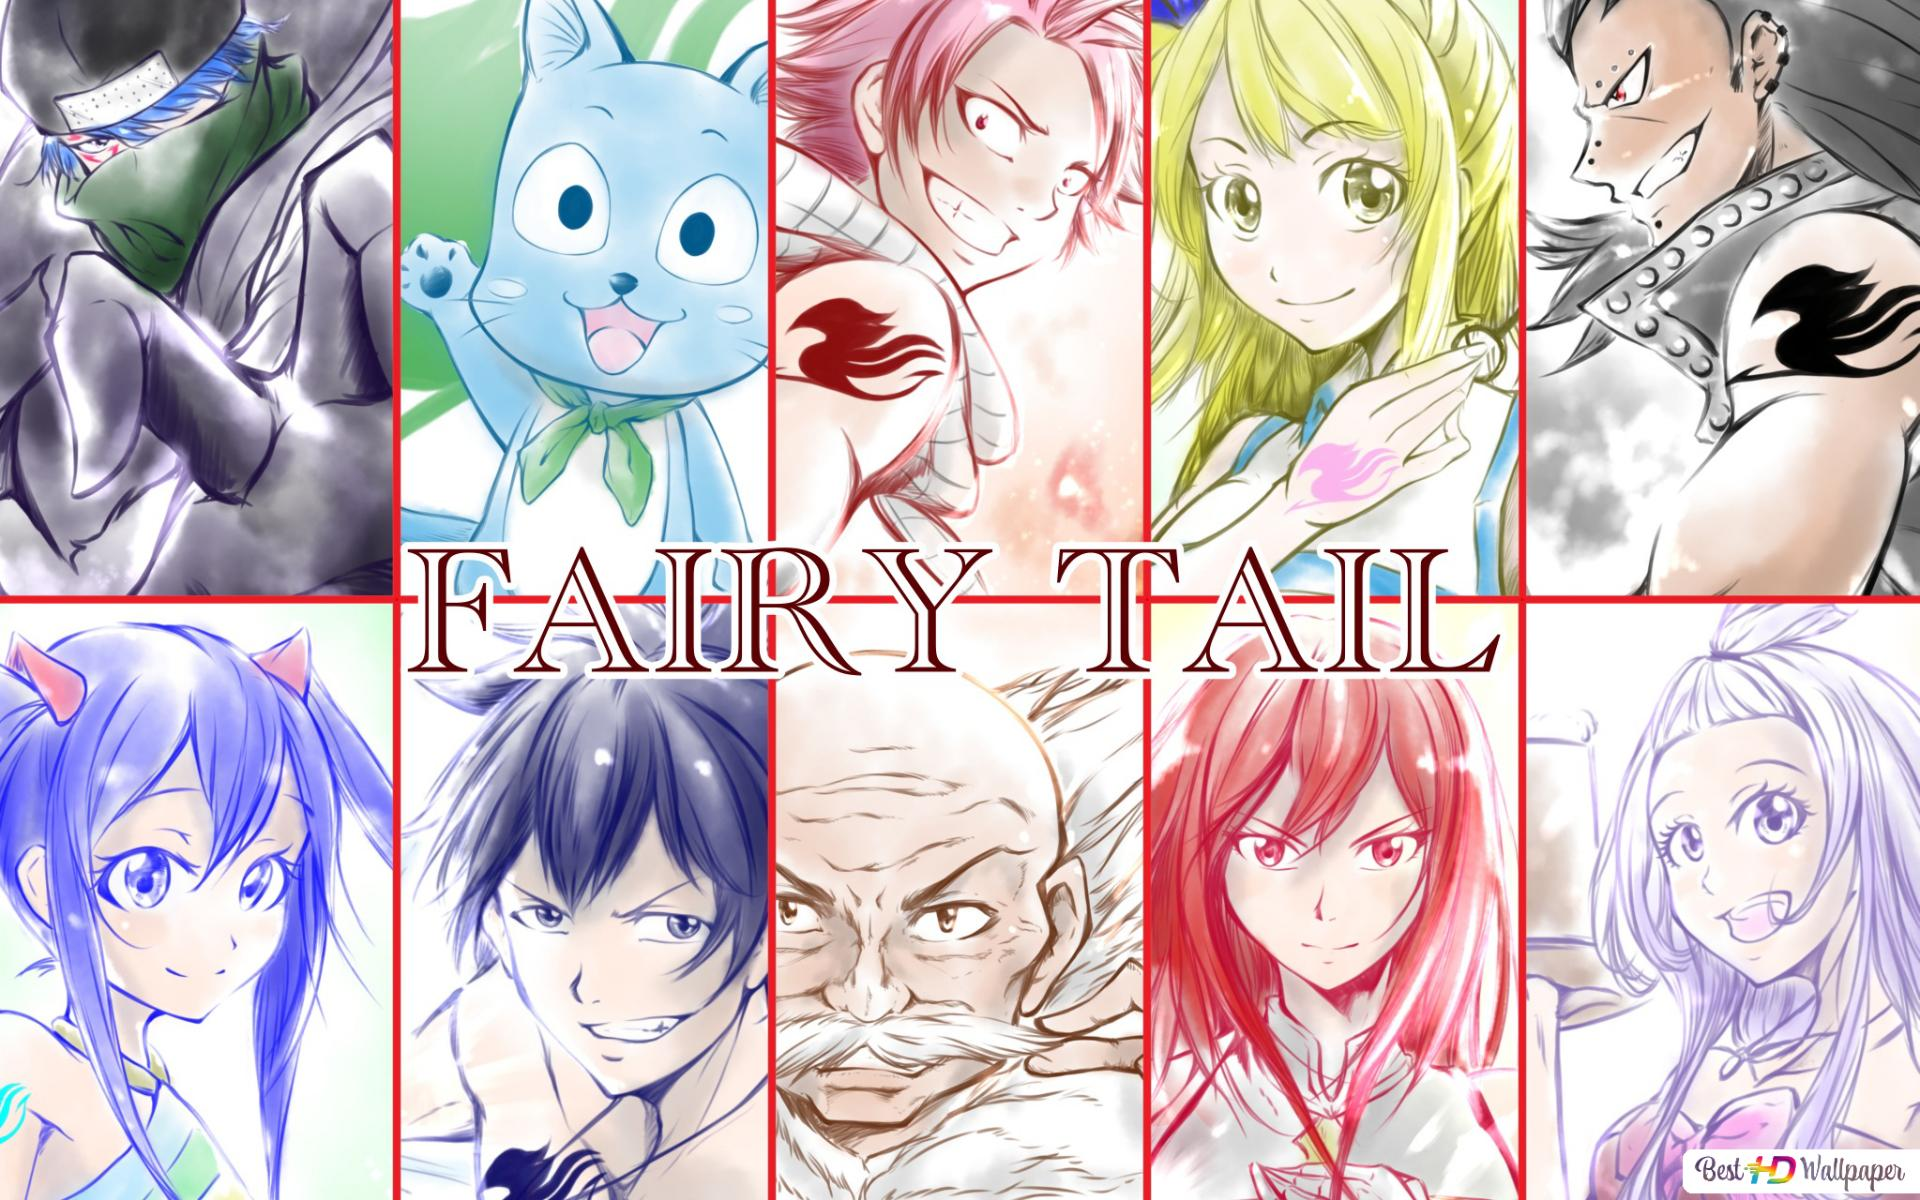 Fairy Tail Guild Hd Wallpaper Download